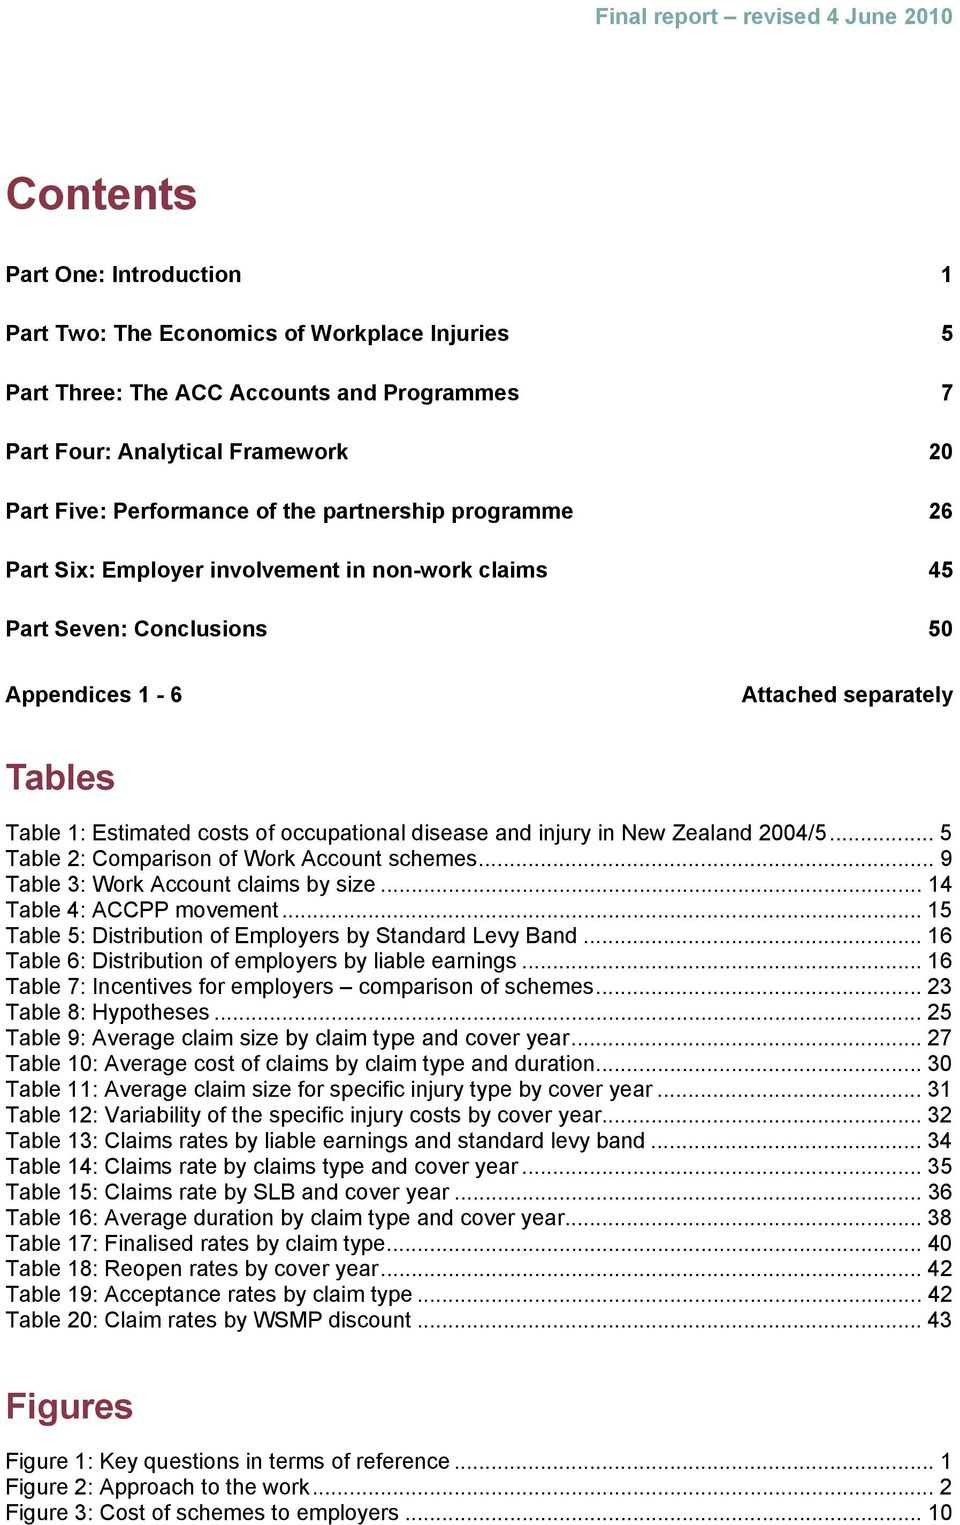 injury in New Zealand 2004/5... 5 Table 2: Comparison of Work Account schemes... 9 Table 3: Work Account claims by size... 14 Table 4: ACCPP movement.